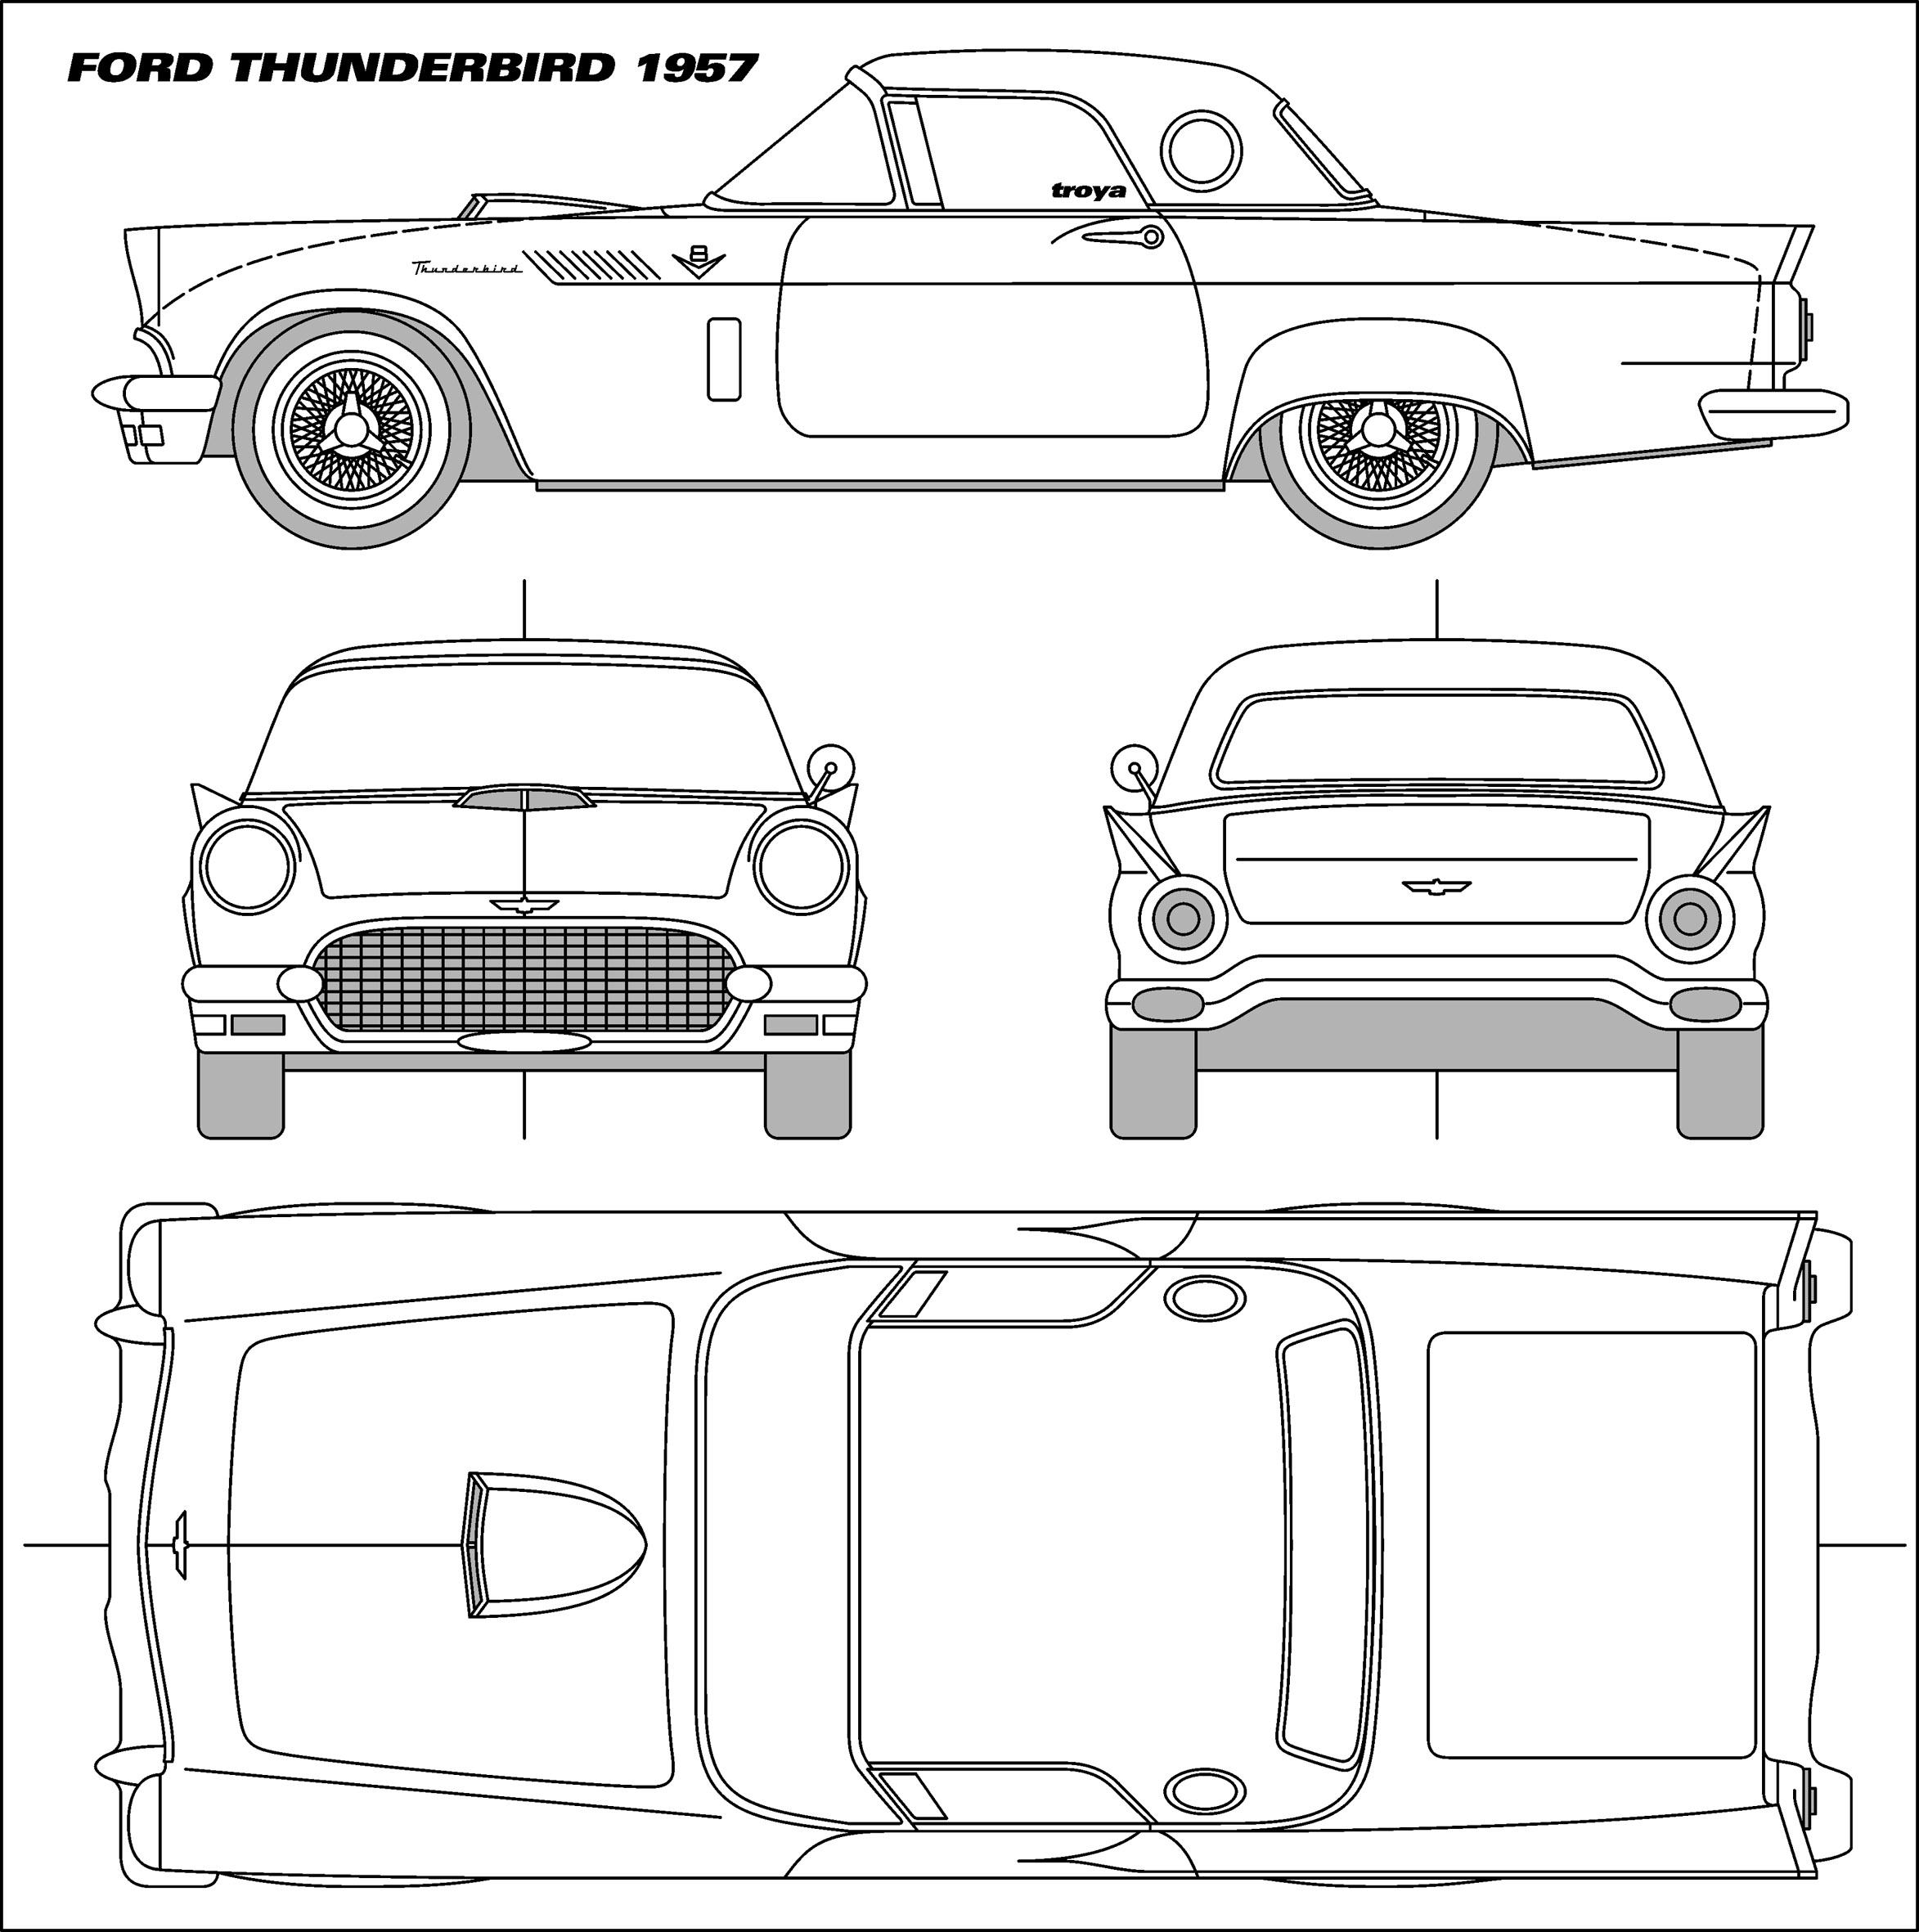 Ford Thunderbird Blueprints